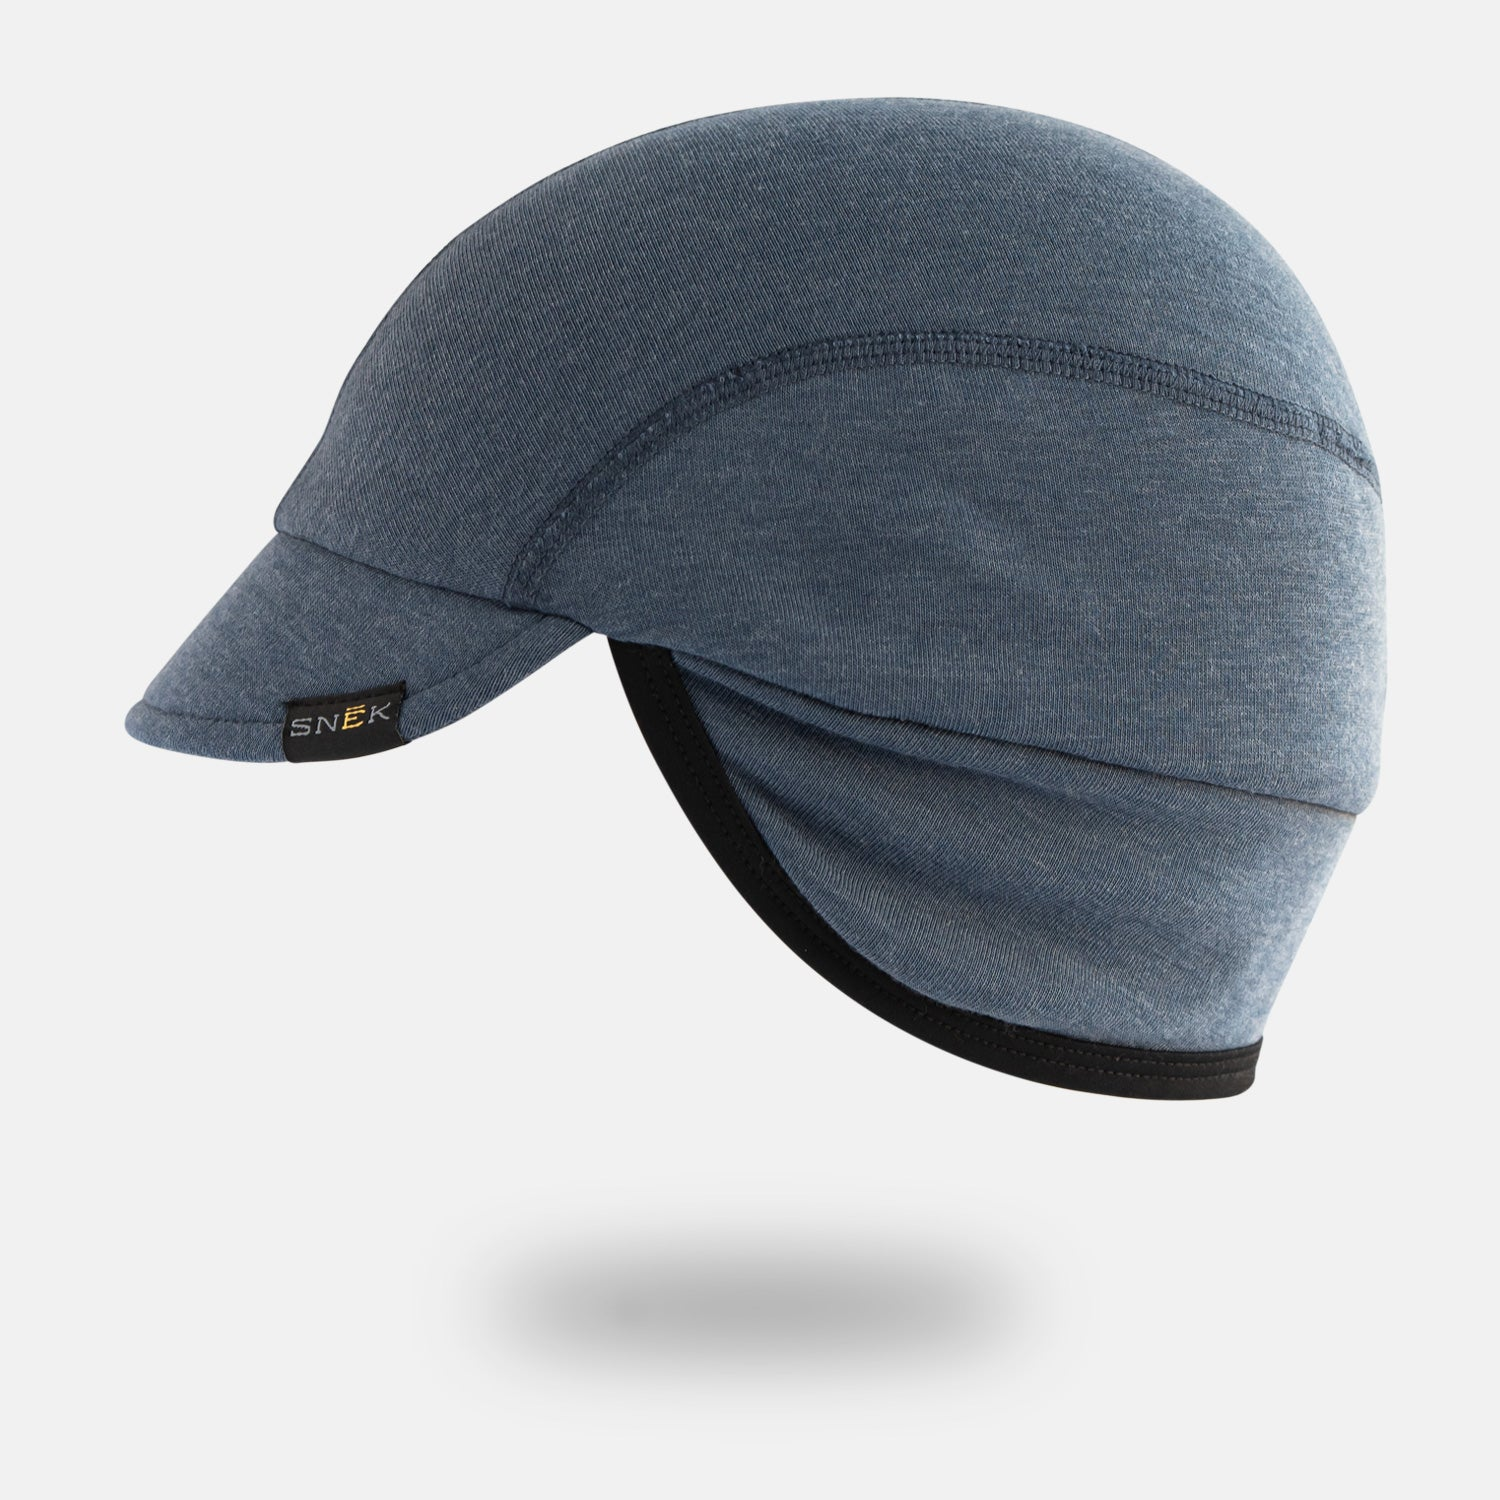 snek cycling polartec thermal winter thermal cap floating